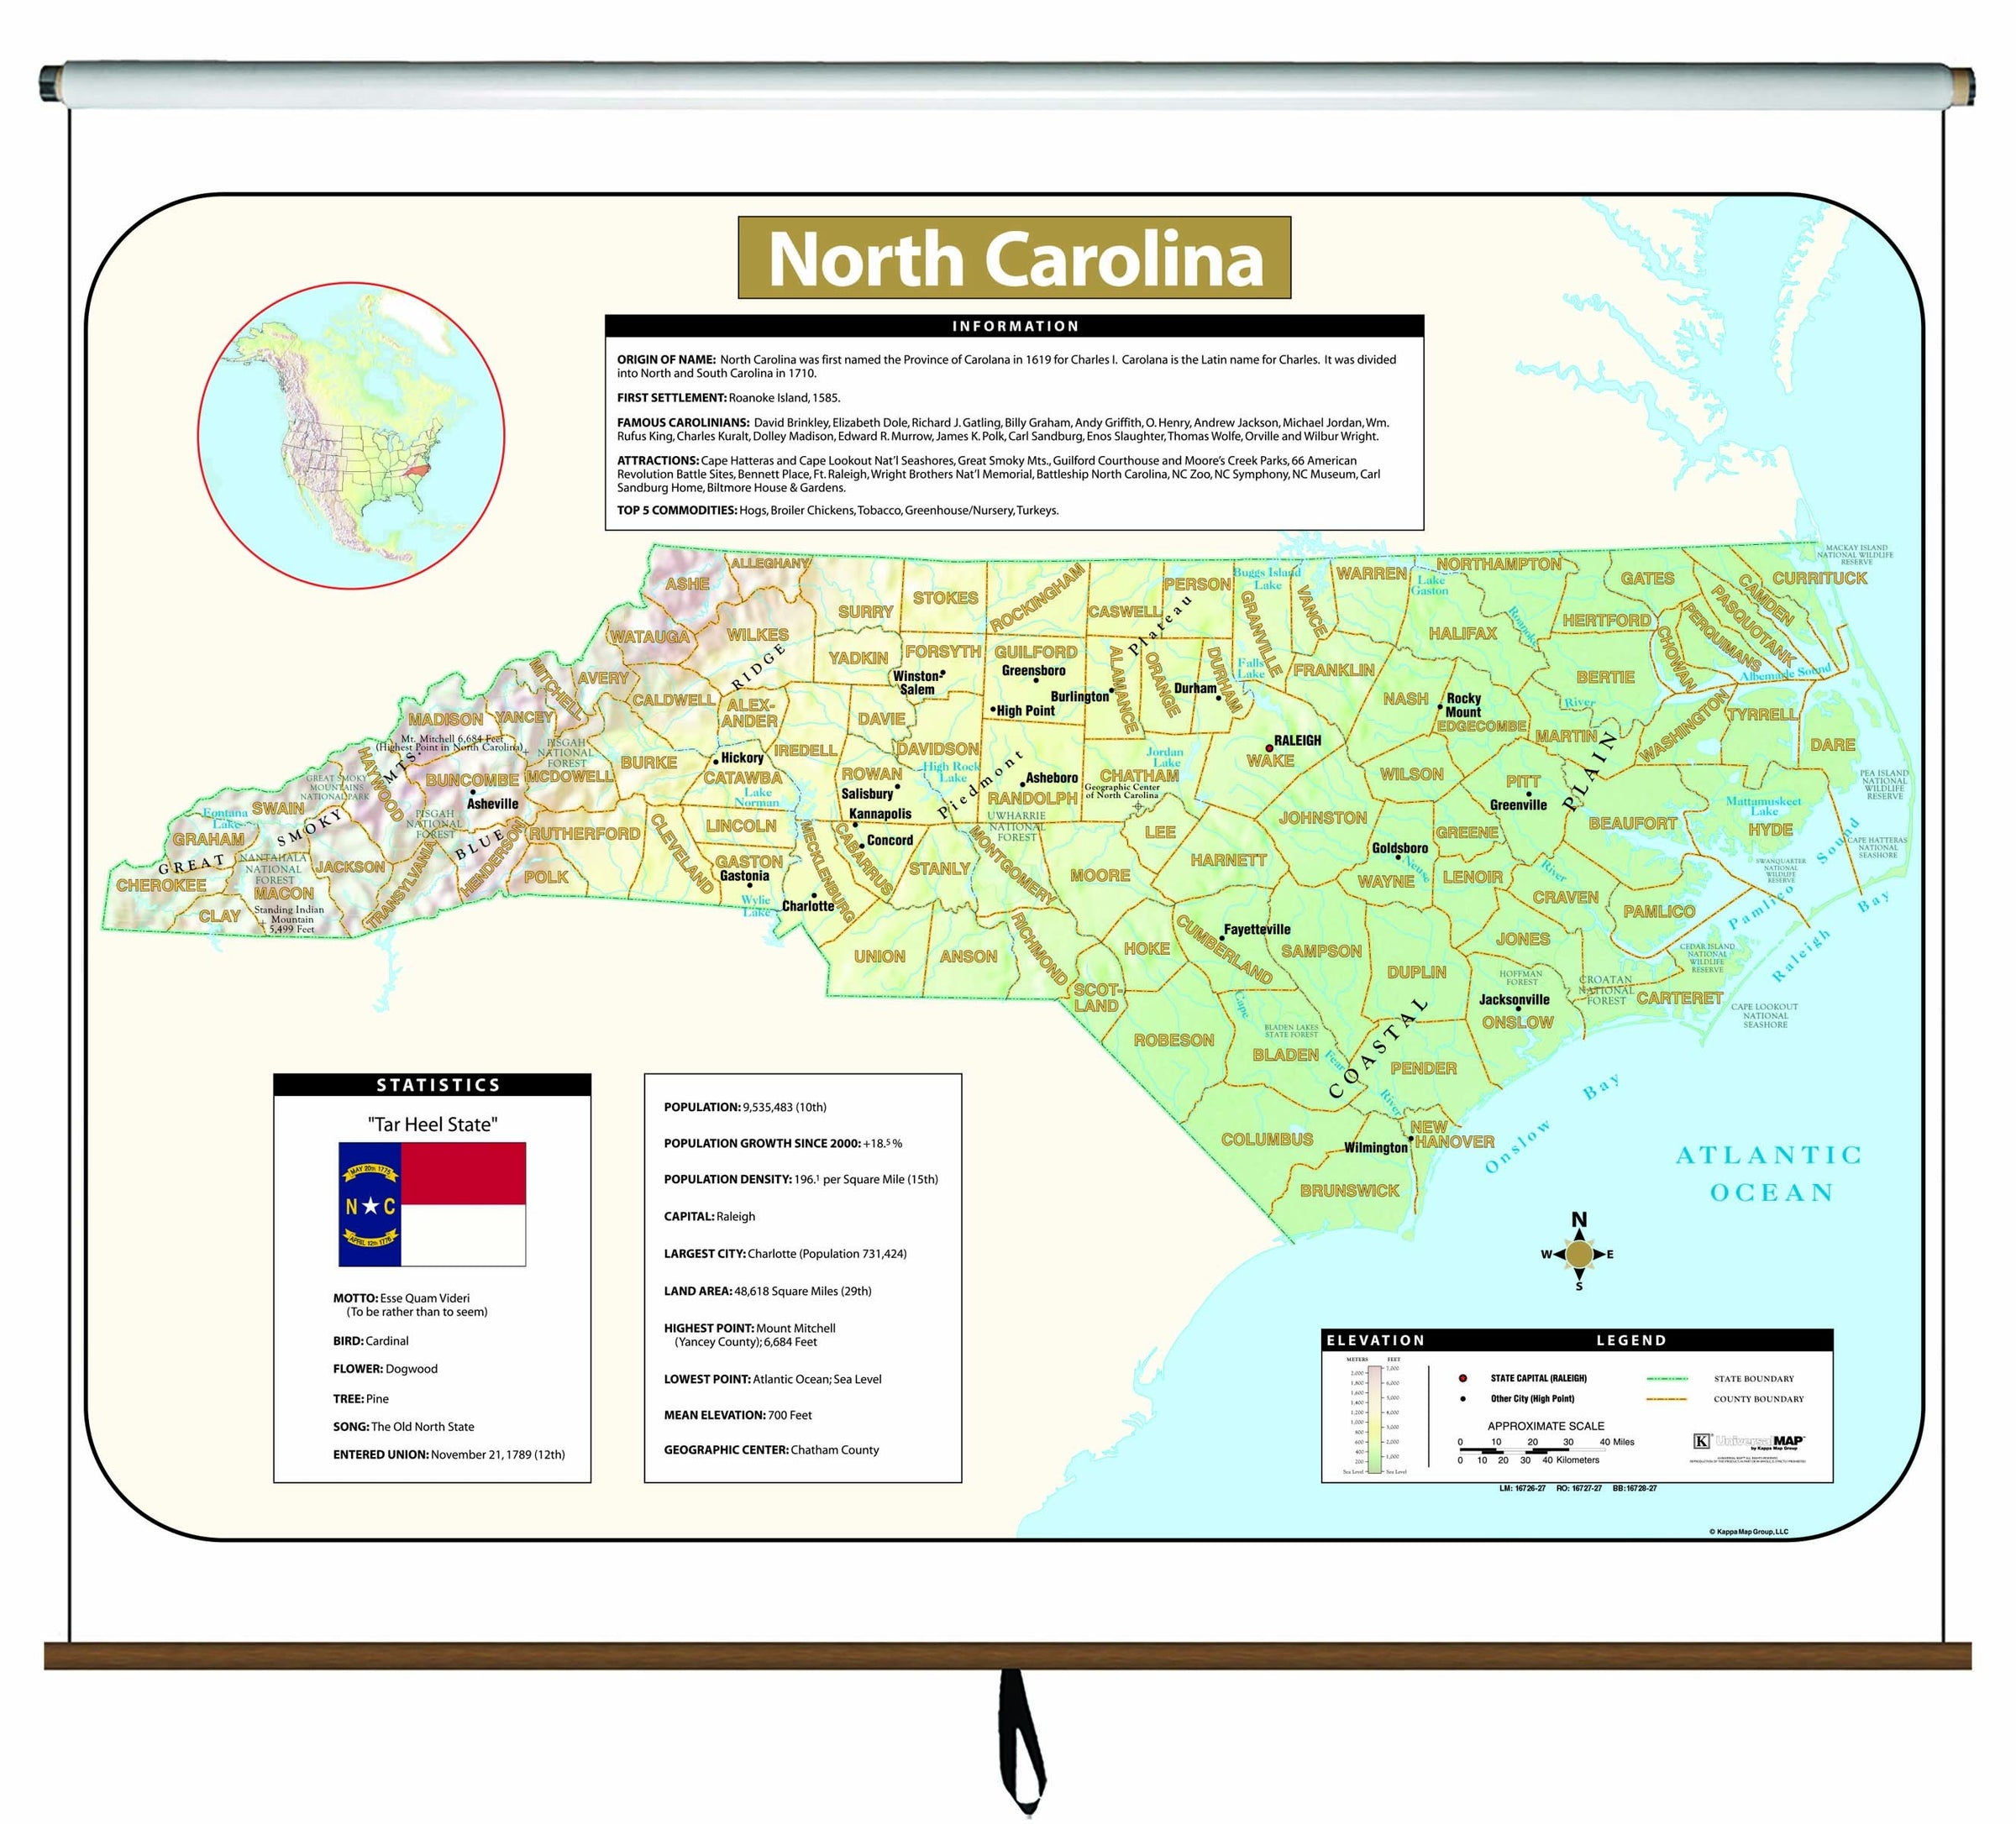 North Carolina Large Scale Shaded Relief Wall Map on Roller